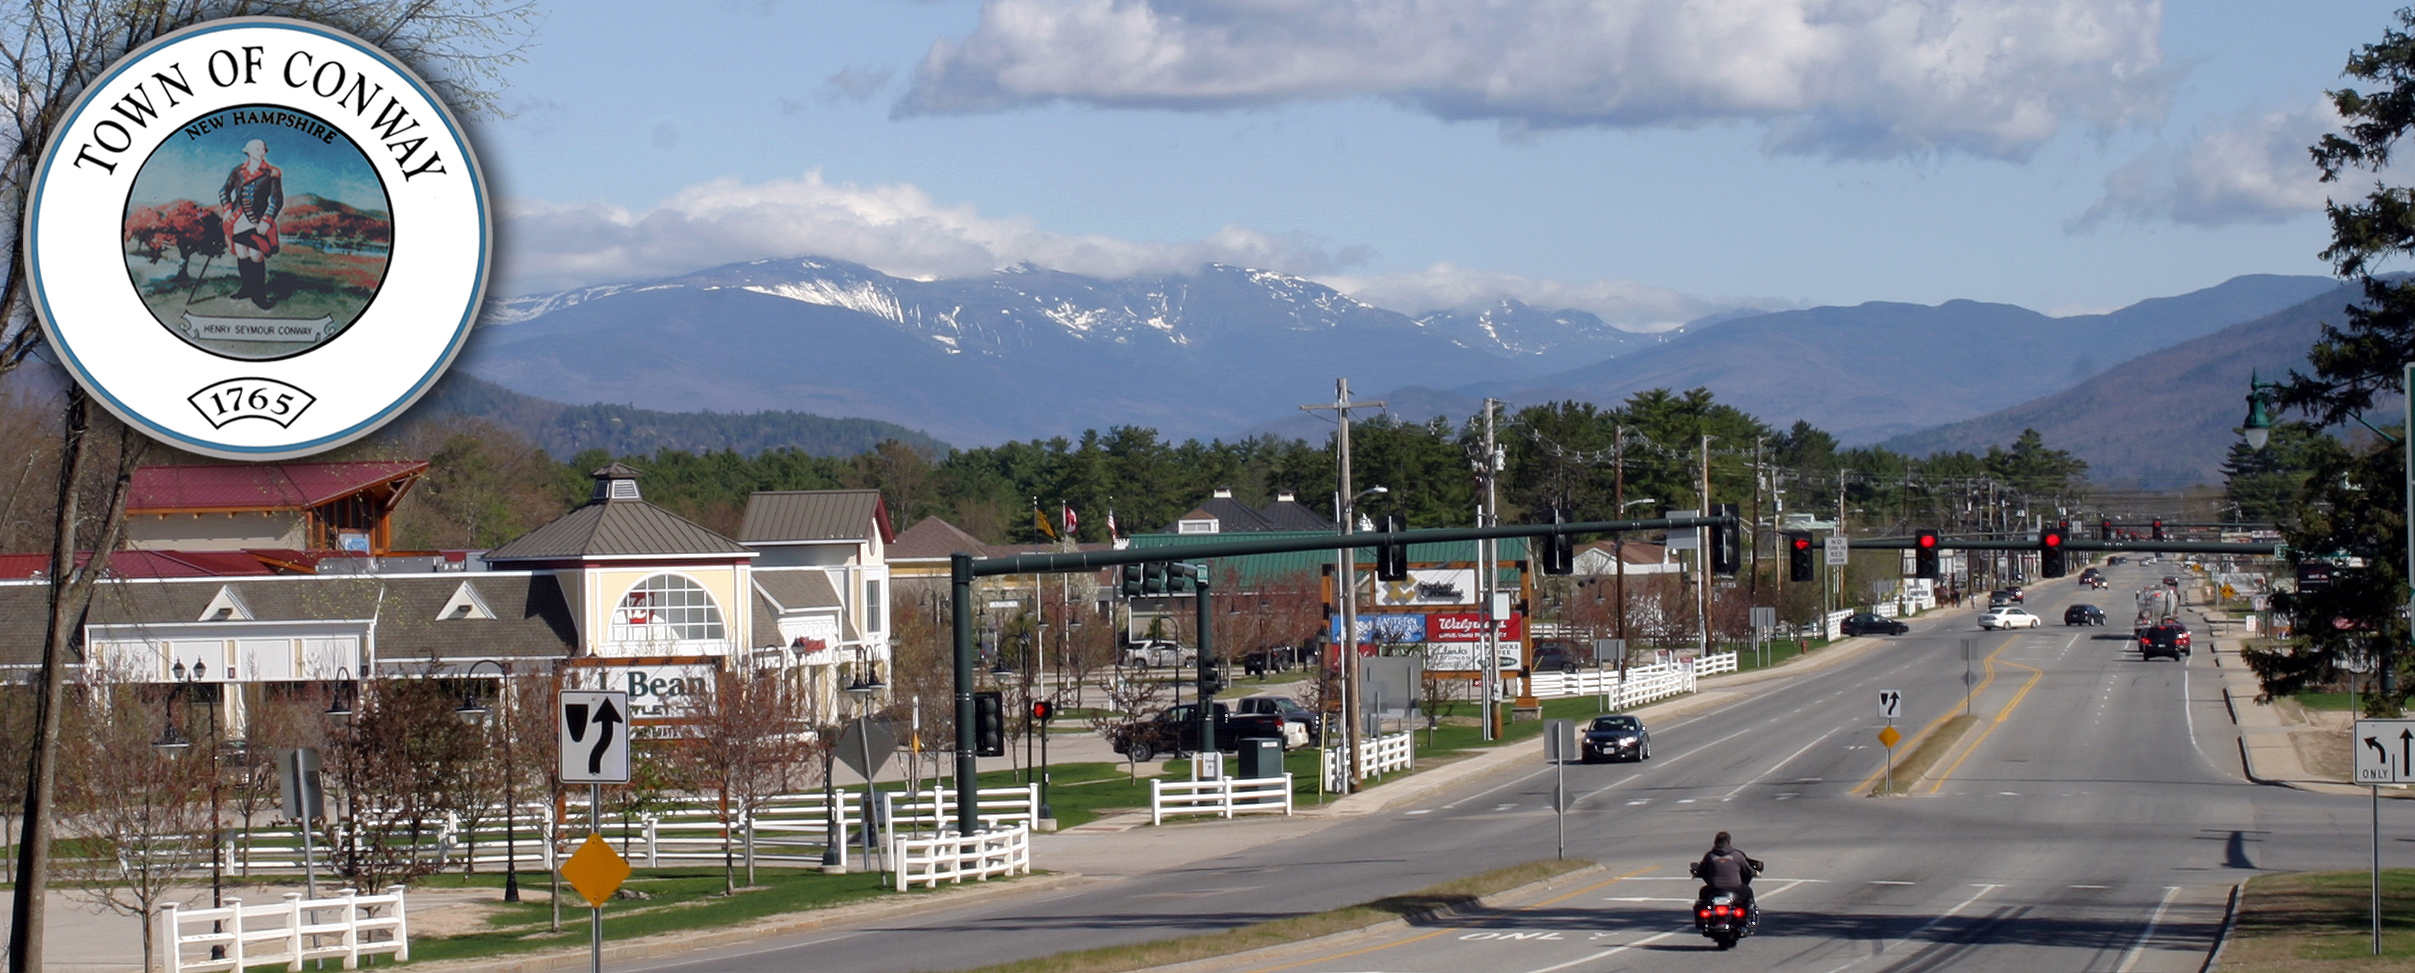 Kancamagus Highway Attractions And Map North Conway Nh | Lobster House